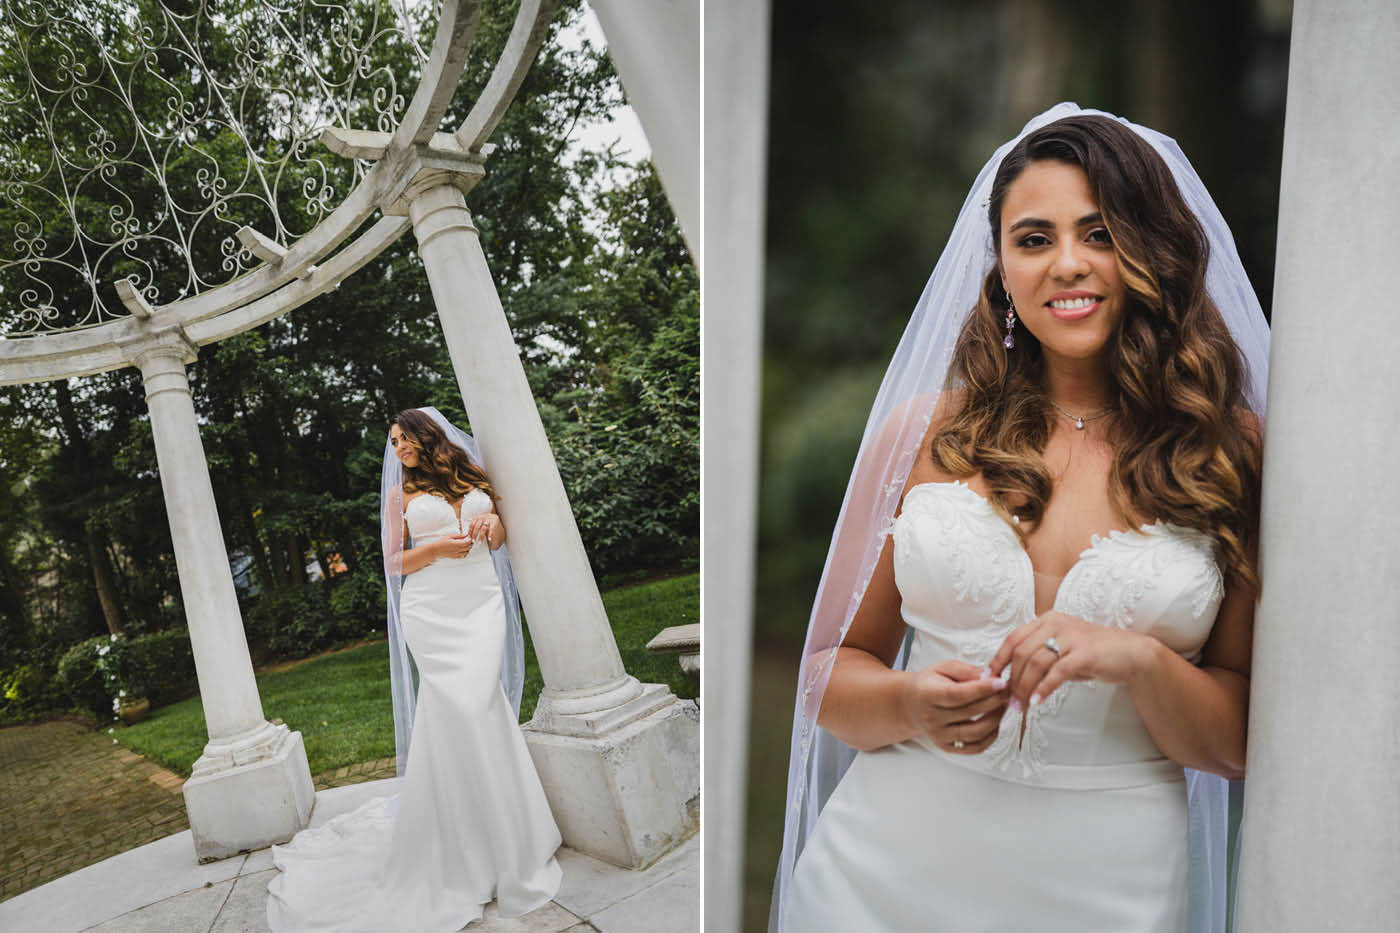 bridal portraits at the Estate at Florentine Gardens by Weddings by Hanel